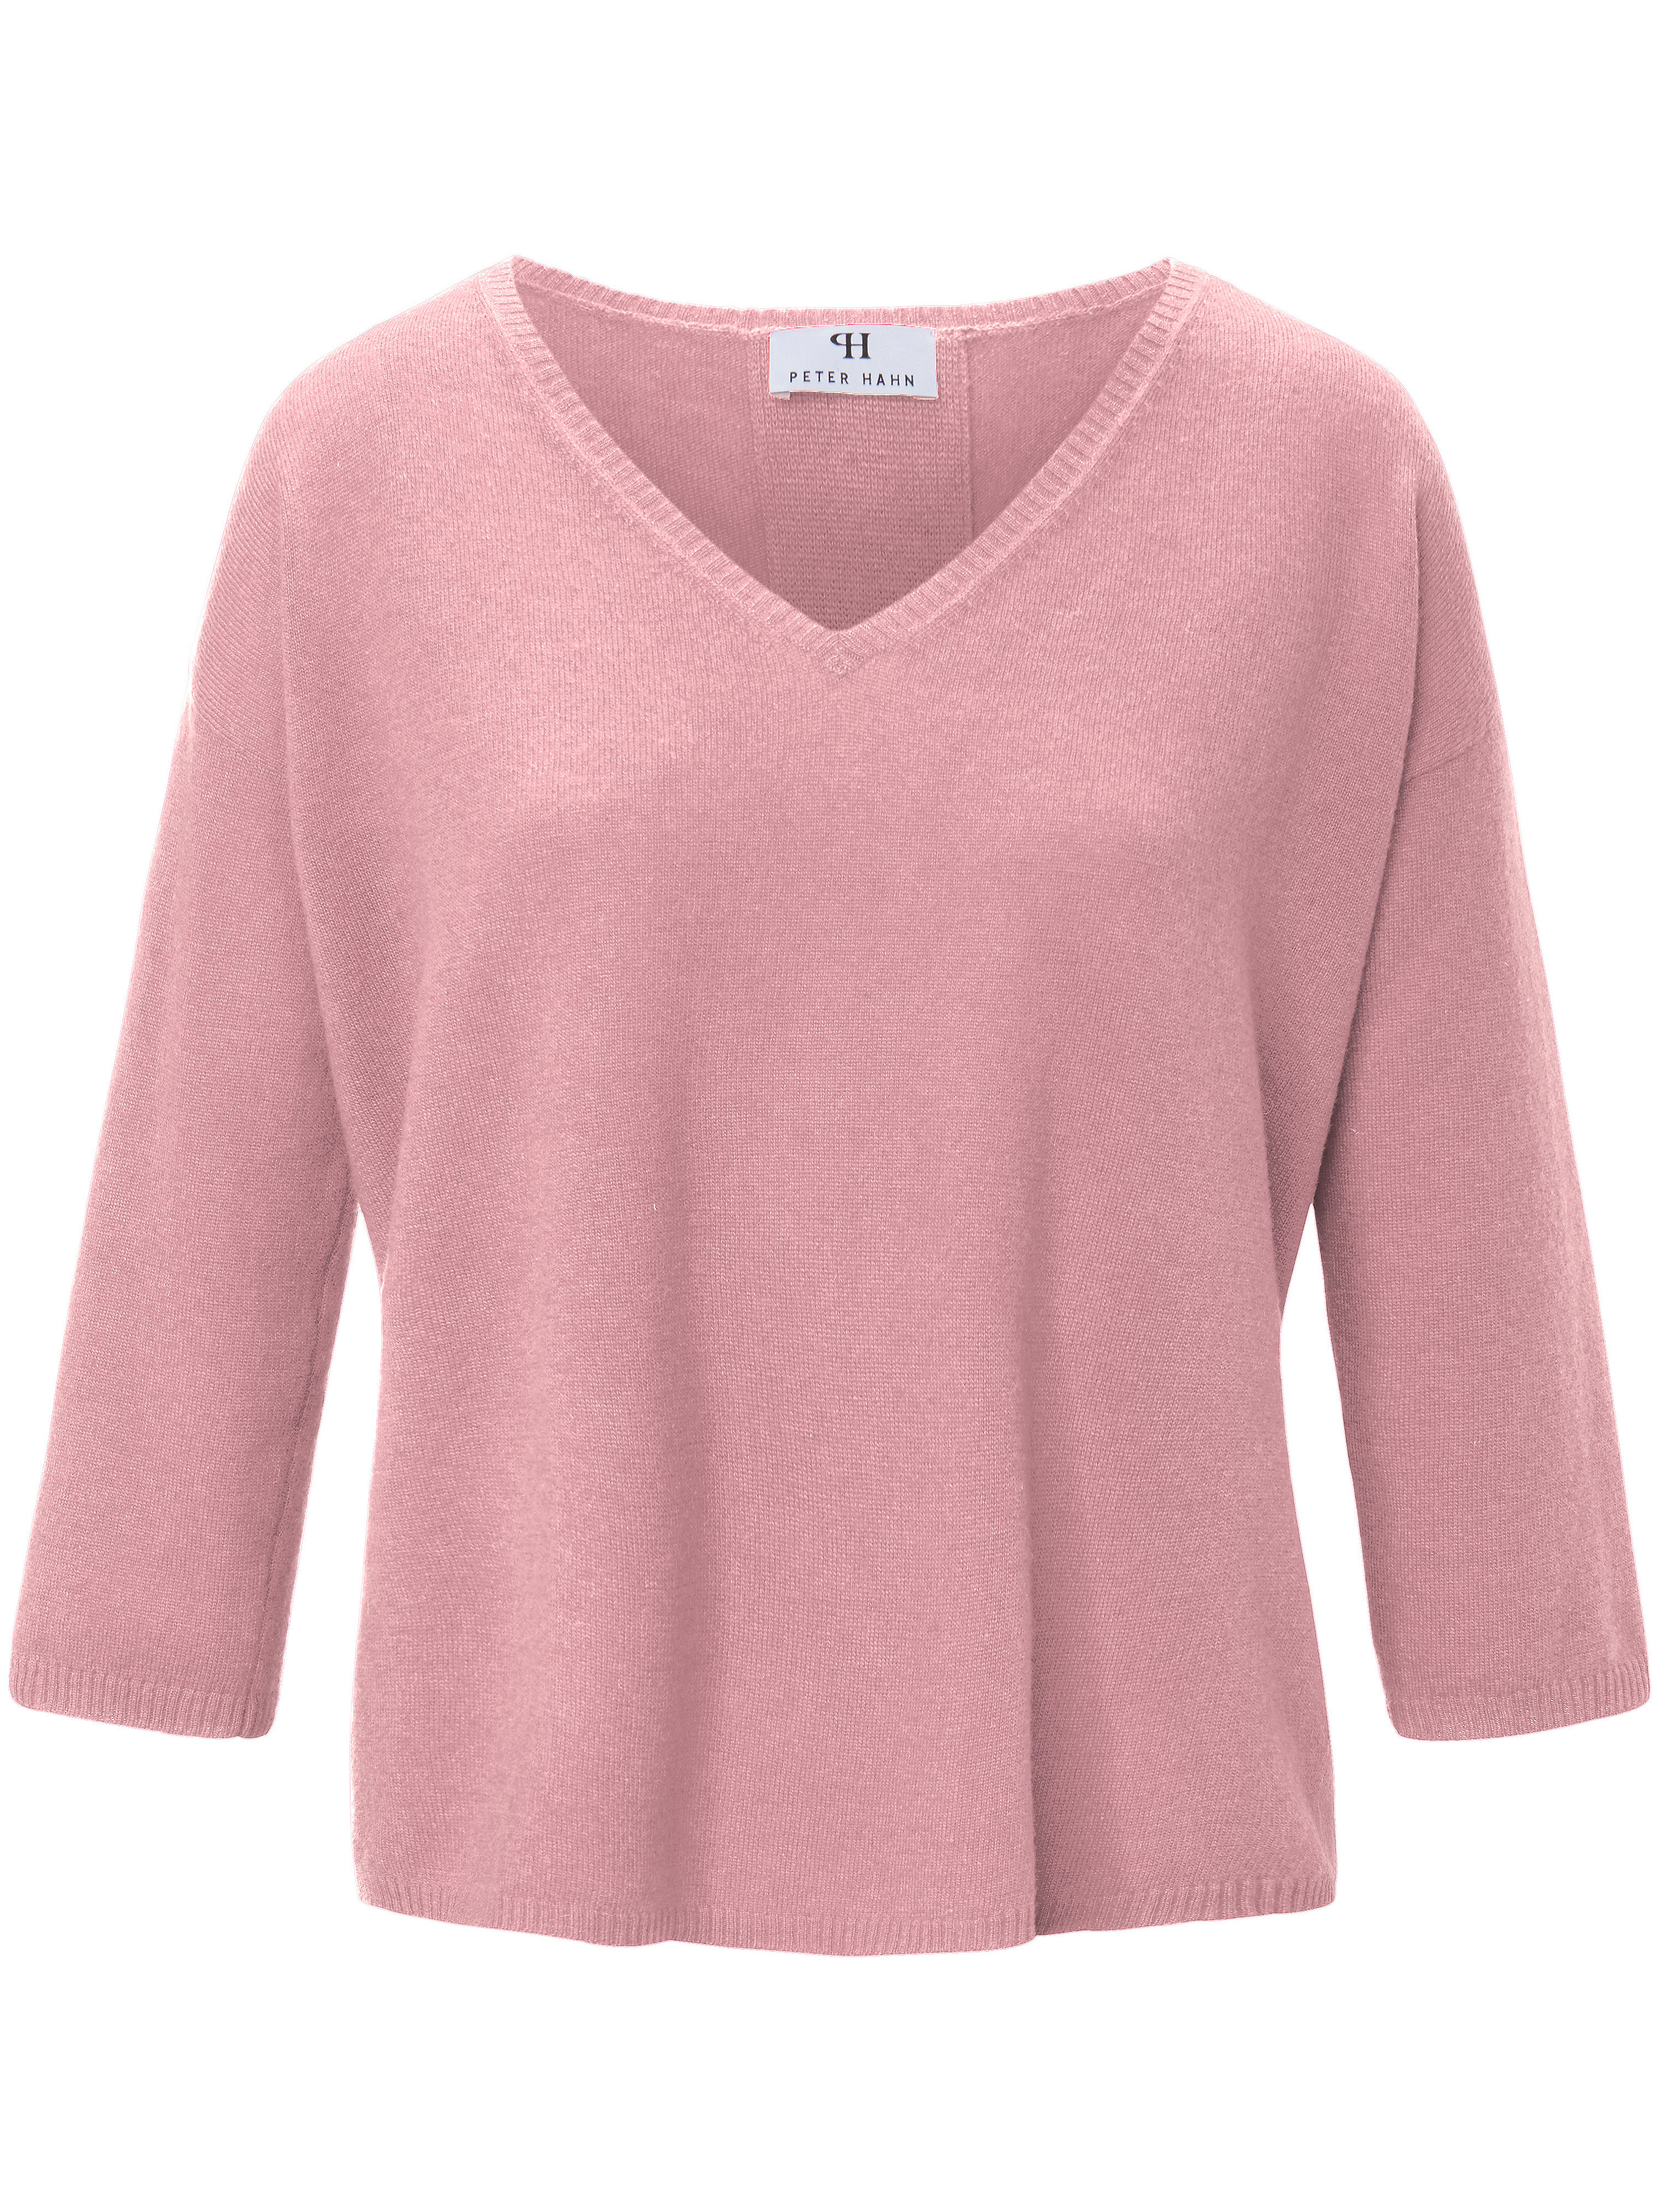 Le pull 100% laine vierge manches 3/4  Peter Hahn rose taille 44